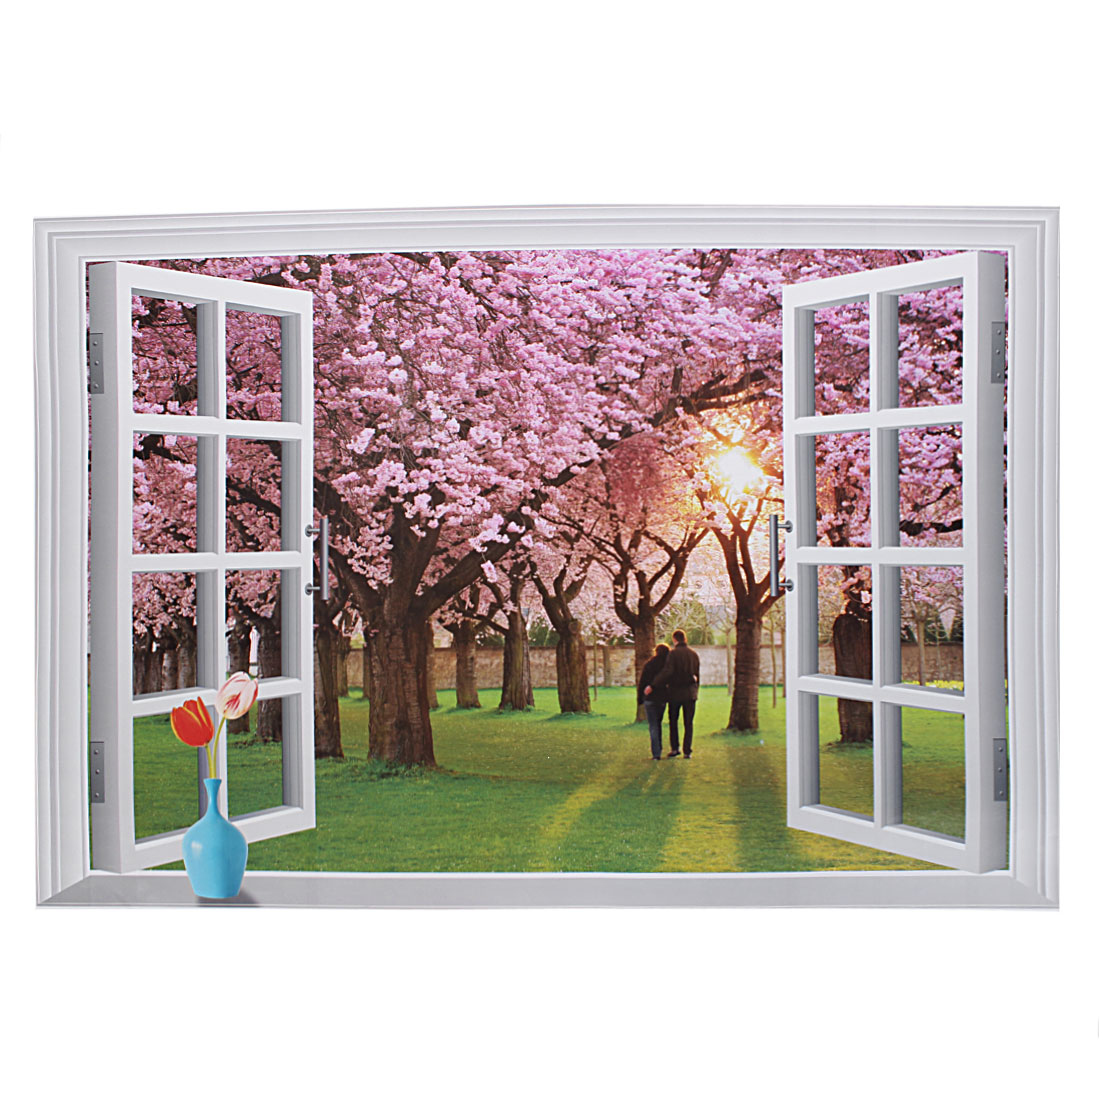 Fake Window Sight Design Removable Art Mural Wall Sticker DIY Wallpaper